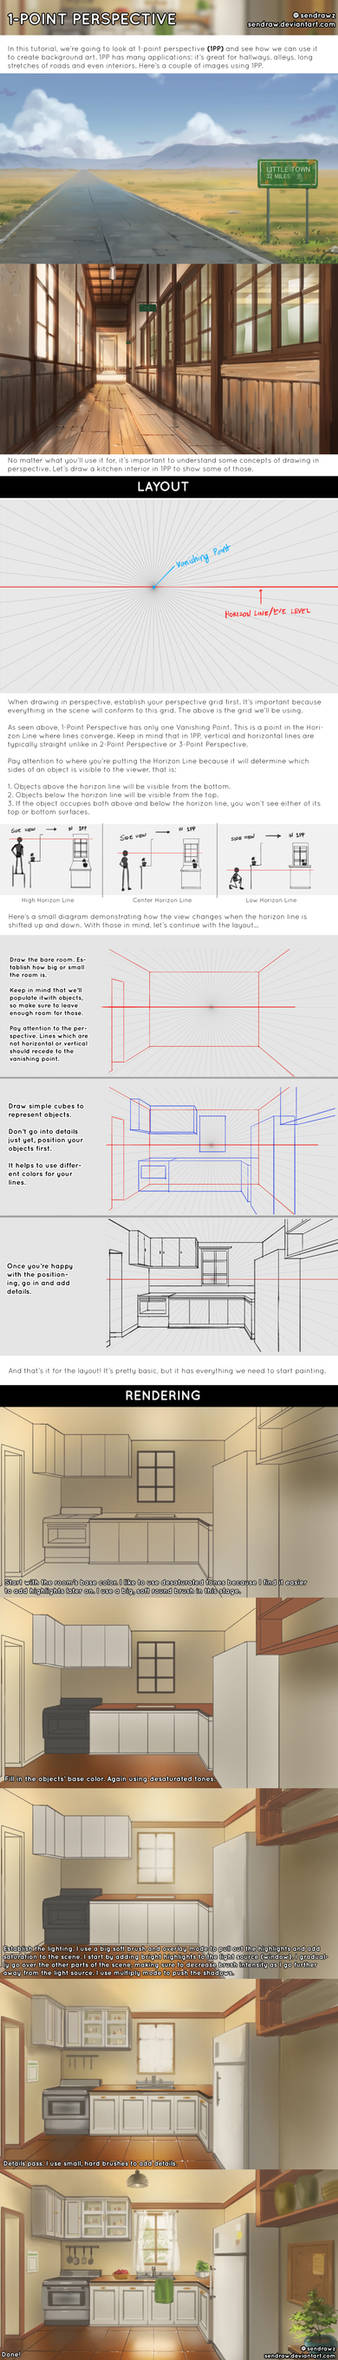 1-Point Perspective Tutorial